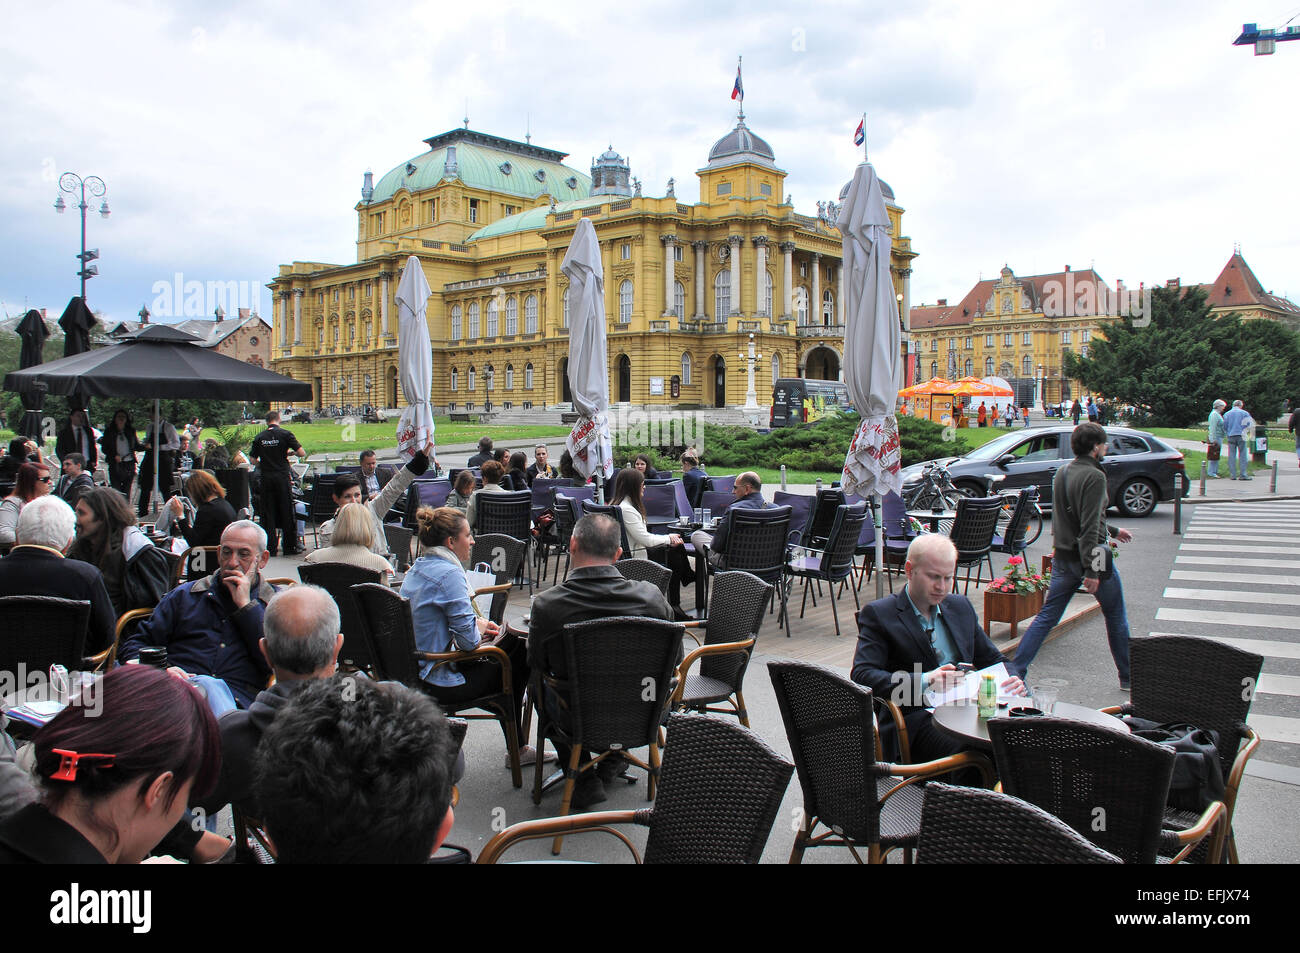 Cafe at the Croatian National Theater, Zagreb, Croatia - Stock Image